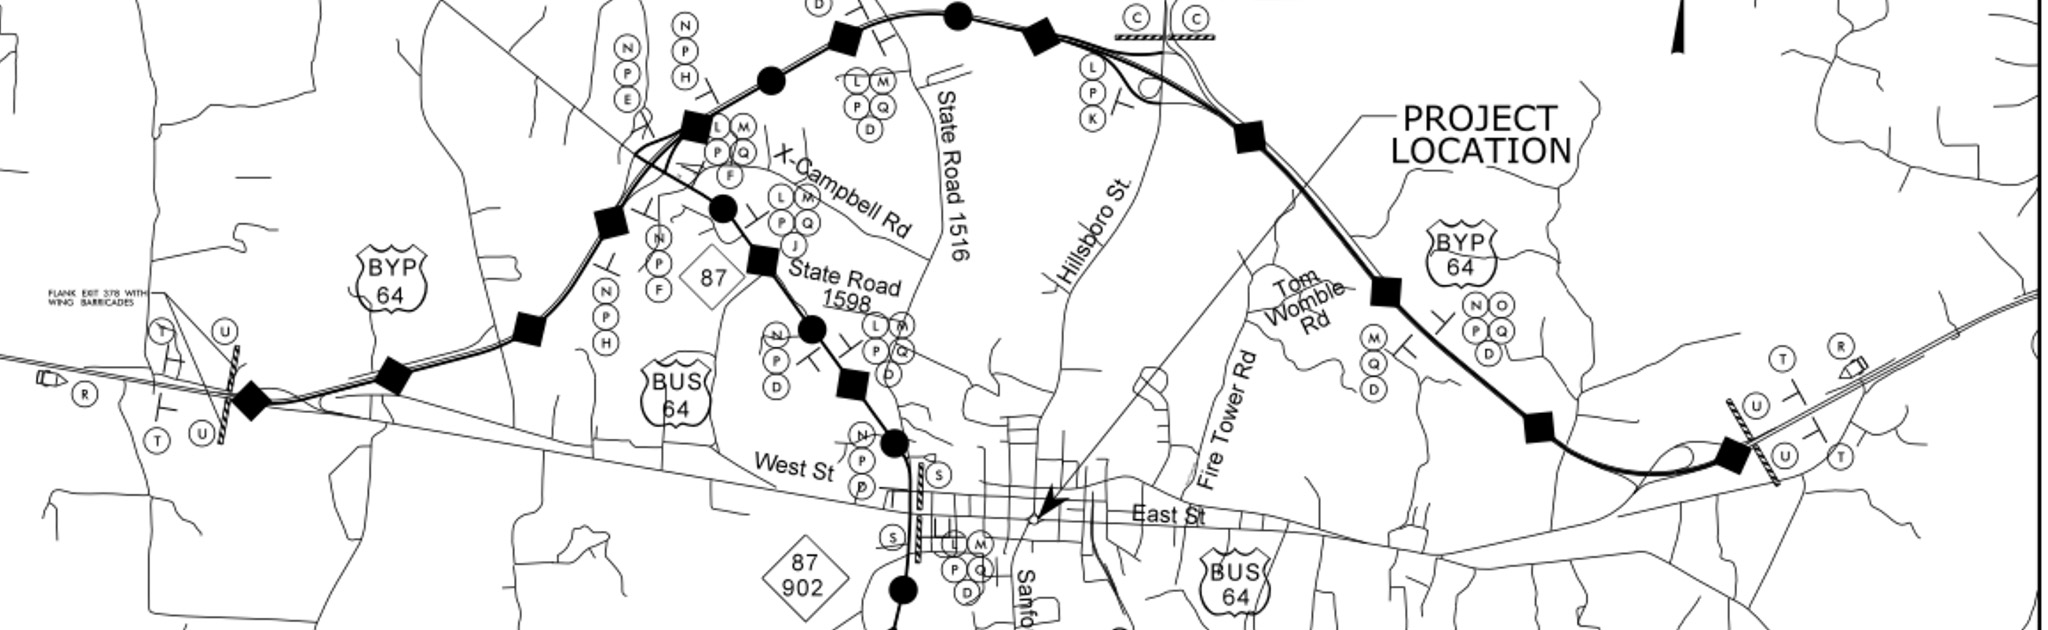 Detours during construction to narrow the pittsboro traffic circle